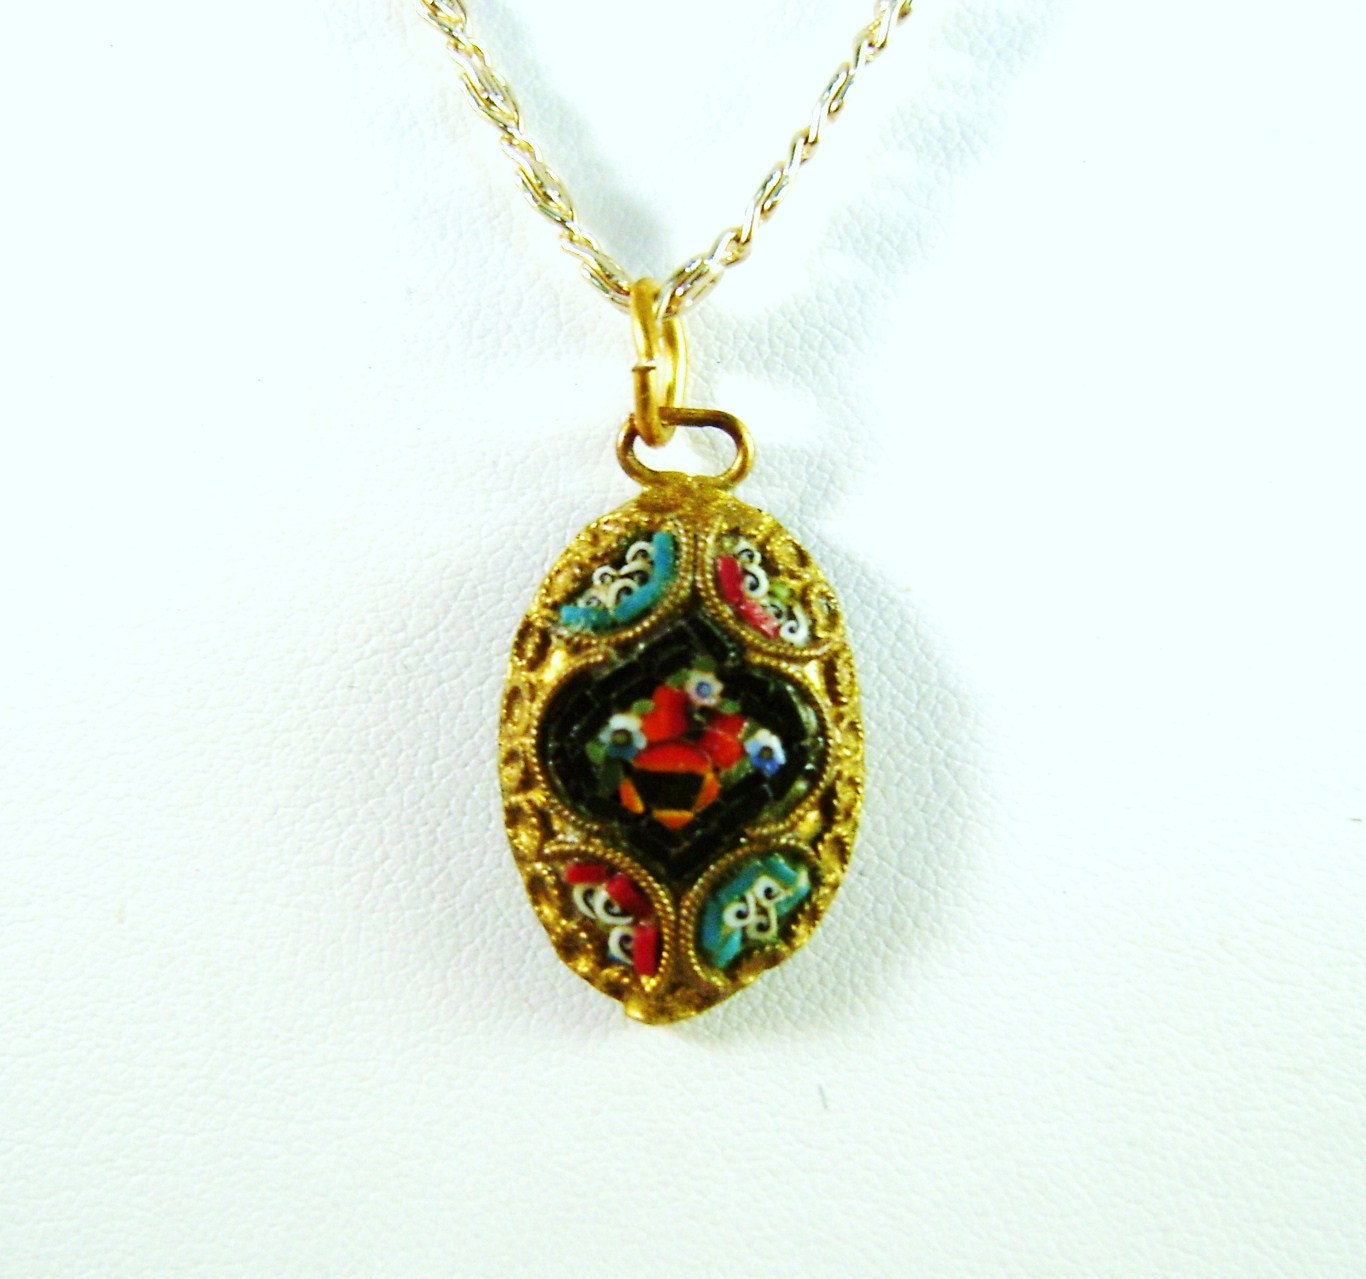 vintage micro mosaic pendant and chain